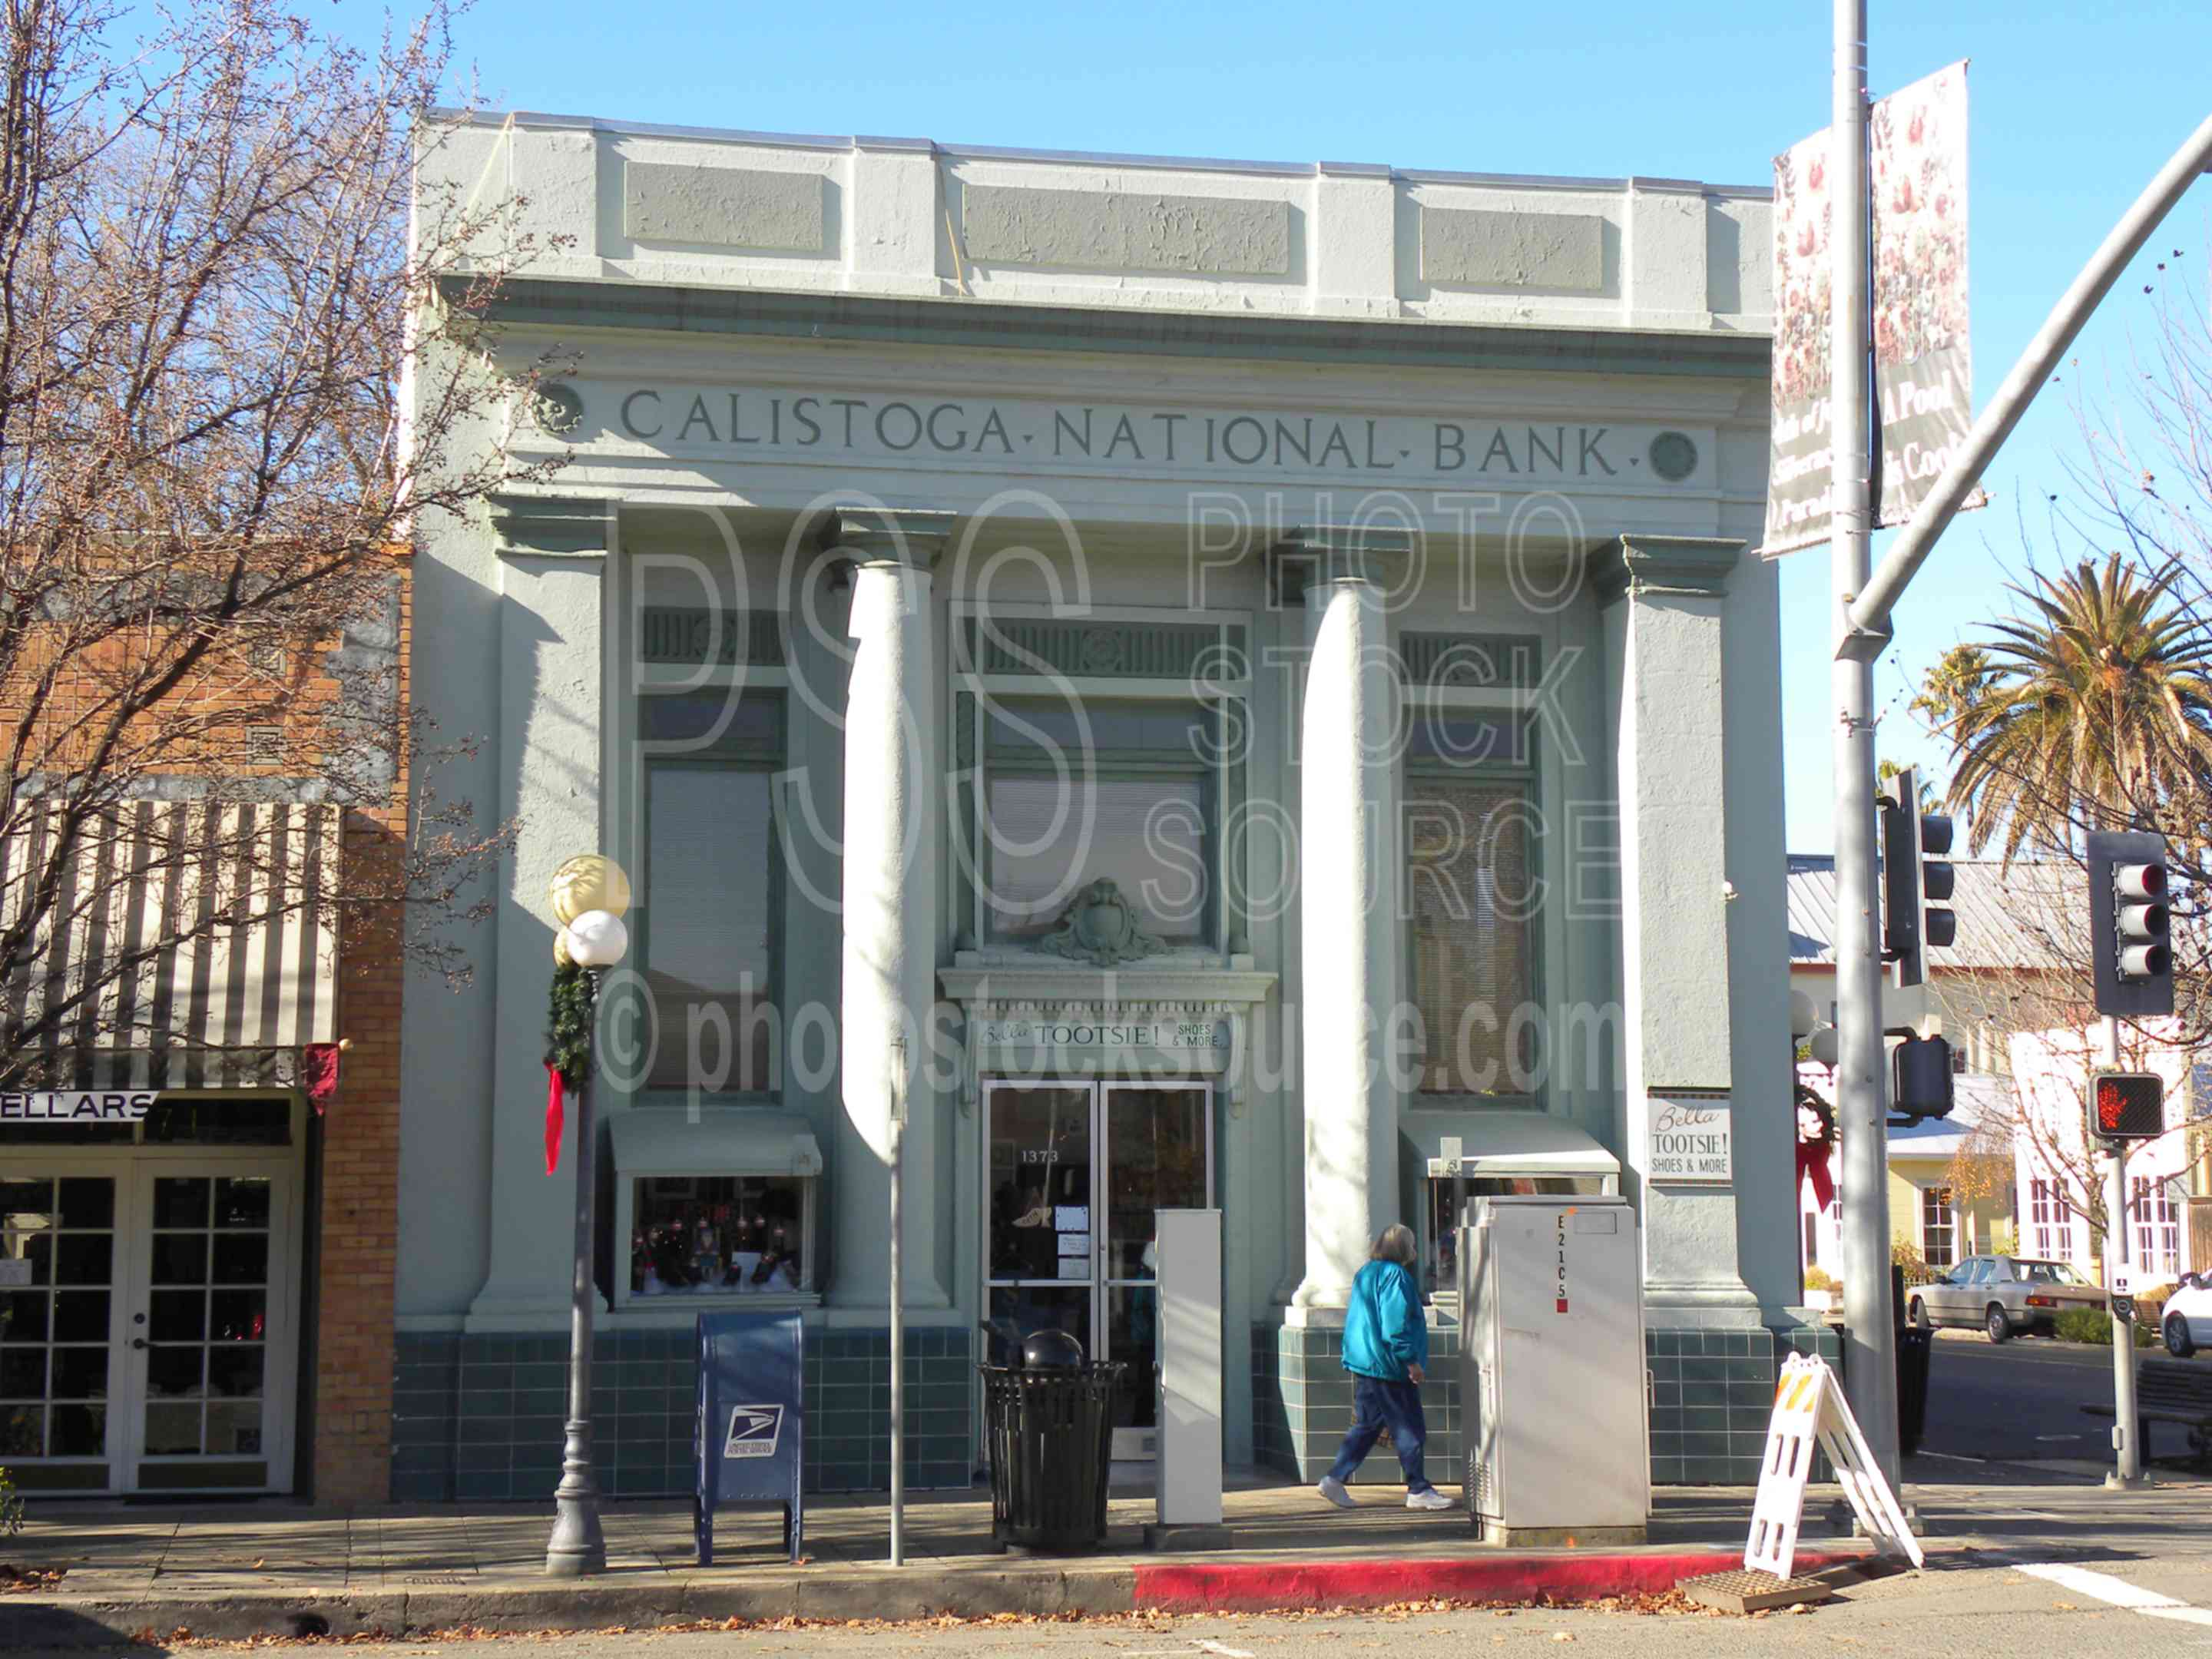 Calistoga National Bank,town,buildings,downtown,street,historic,historical